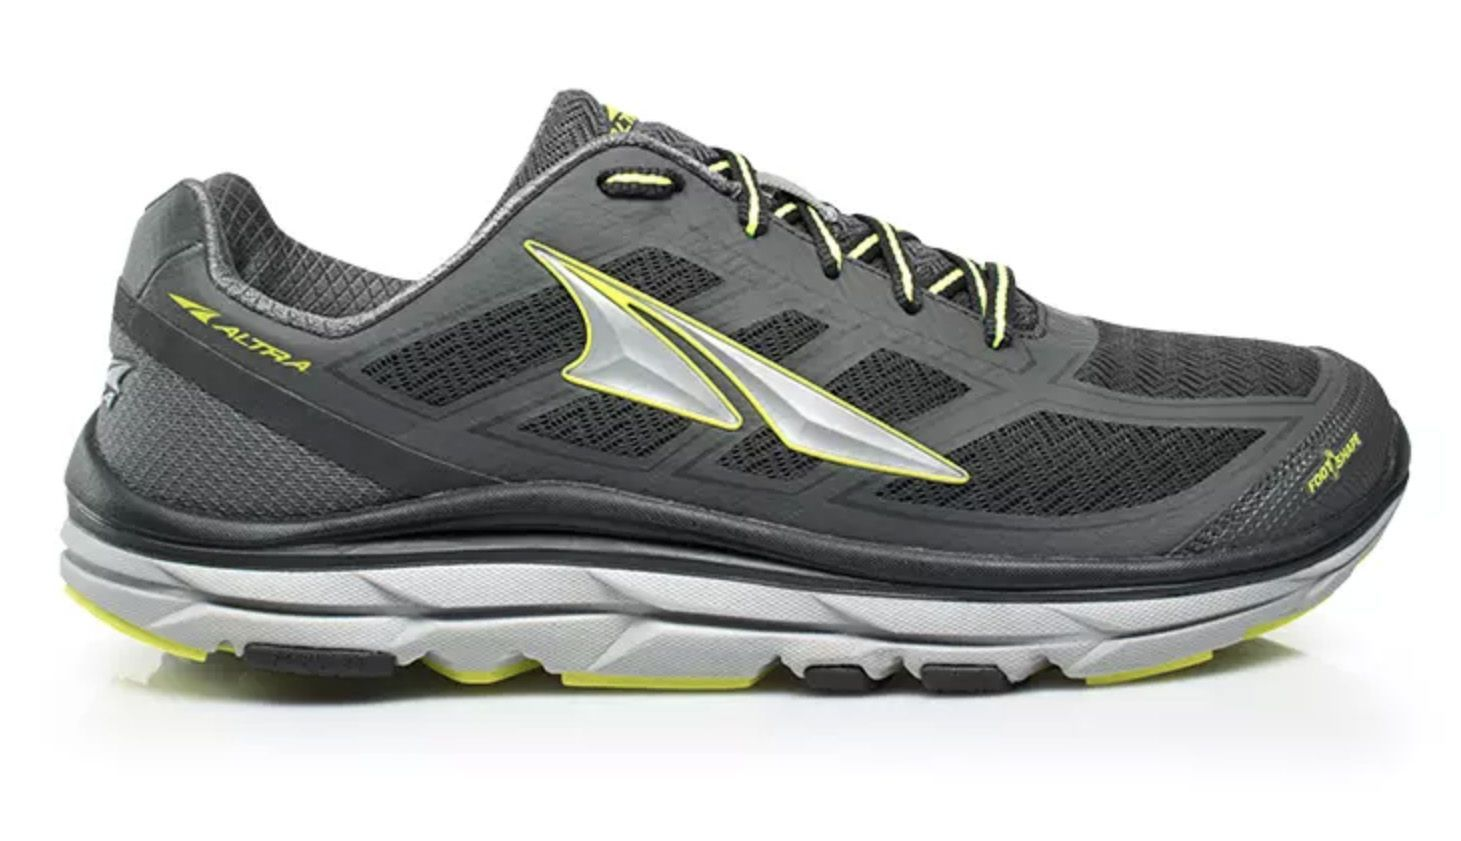 saucony shoes with arch support, OFF 74